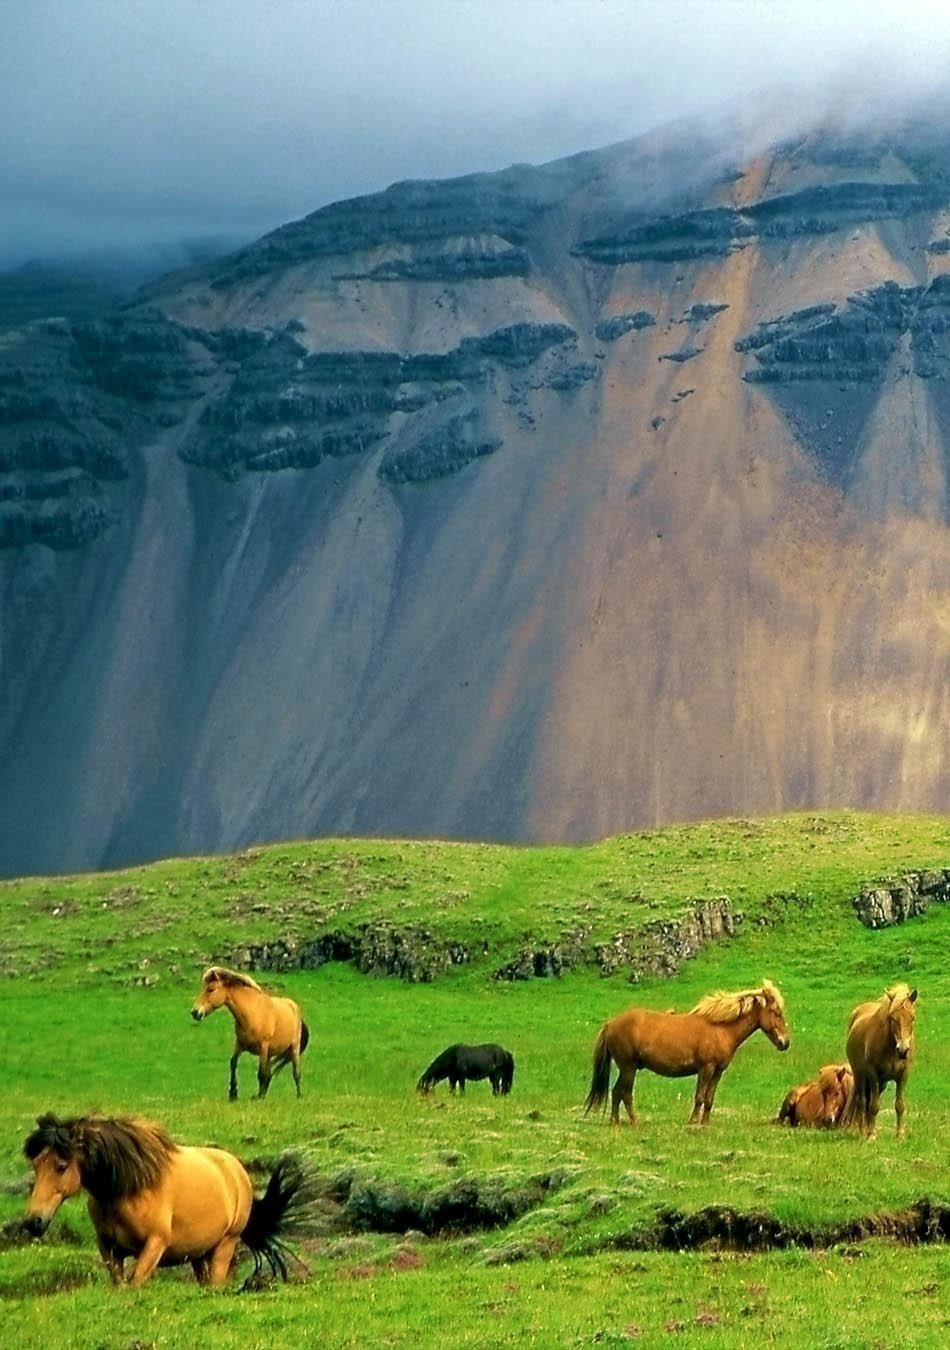 Icelandic horses in a peaceful meadow dominated by a volcanic rose-tinted mountain, Iceland | Iceland Travel Guide